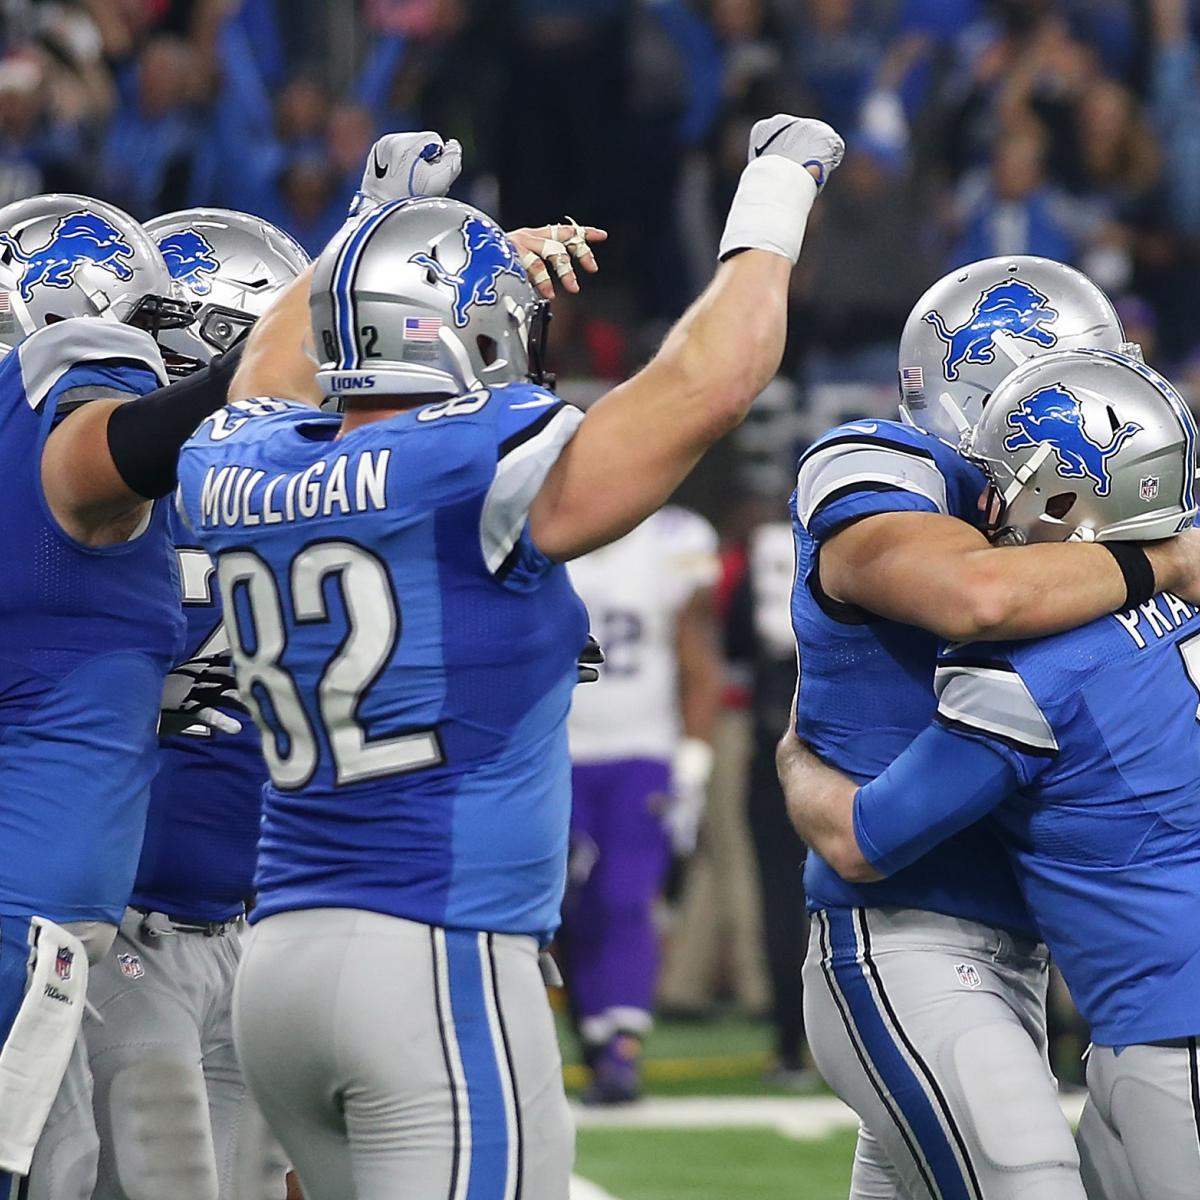 Denver Broncos Vs Detroit Lions Live Score Highlights And: NFL Power Rankings: Reviewing Week 13 Standings After